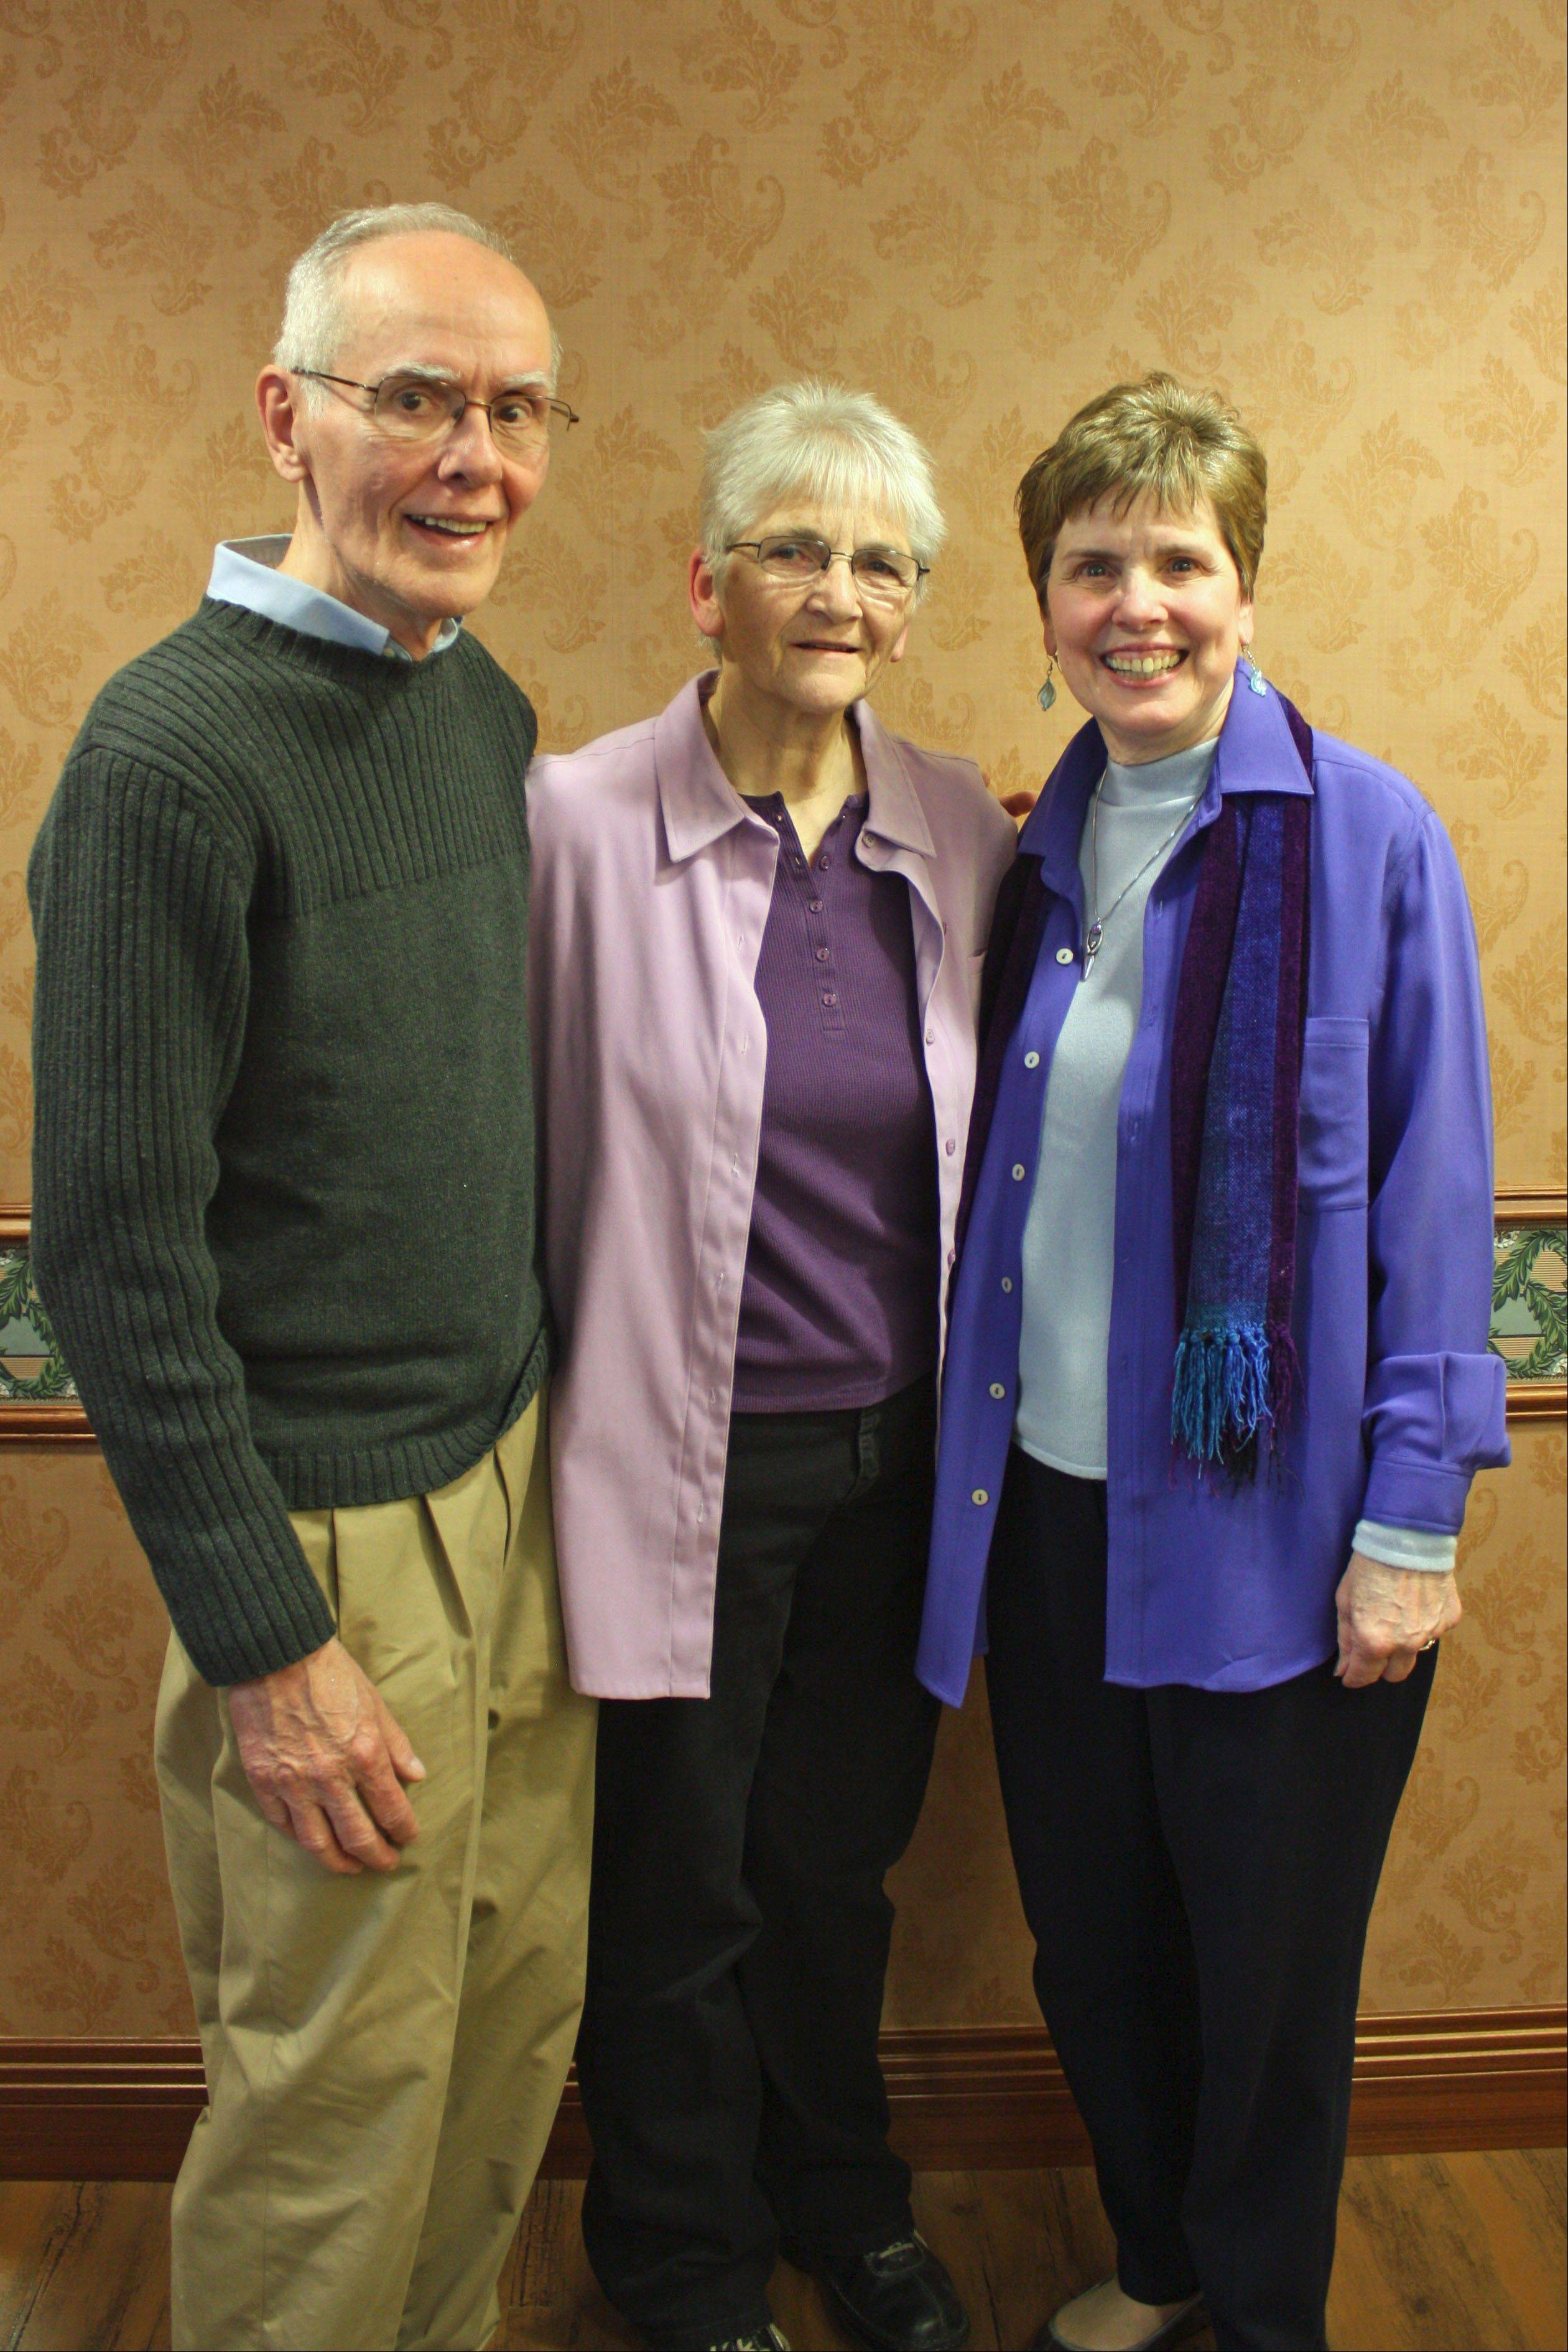 Mary Ellen Durbin, right, and her husband, Ron Durbin, co-founded Daybreak of Lisle to help homeless families transition to self-sufficiency. Sister Helen Jilek, center, has served as treasurer of Daybreak since the organization's inception in 1989.